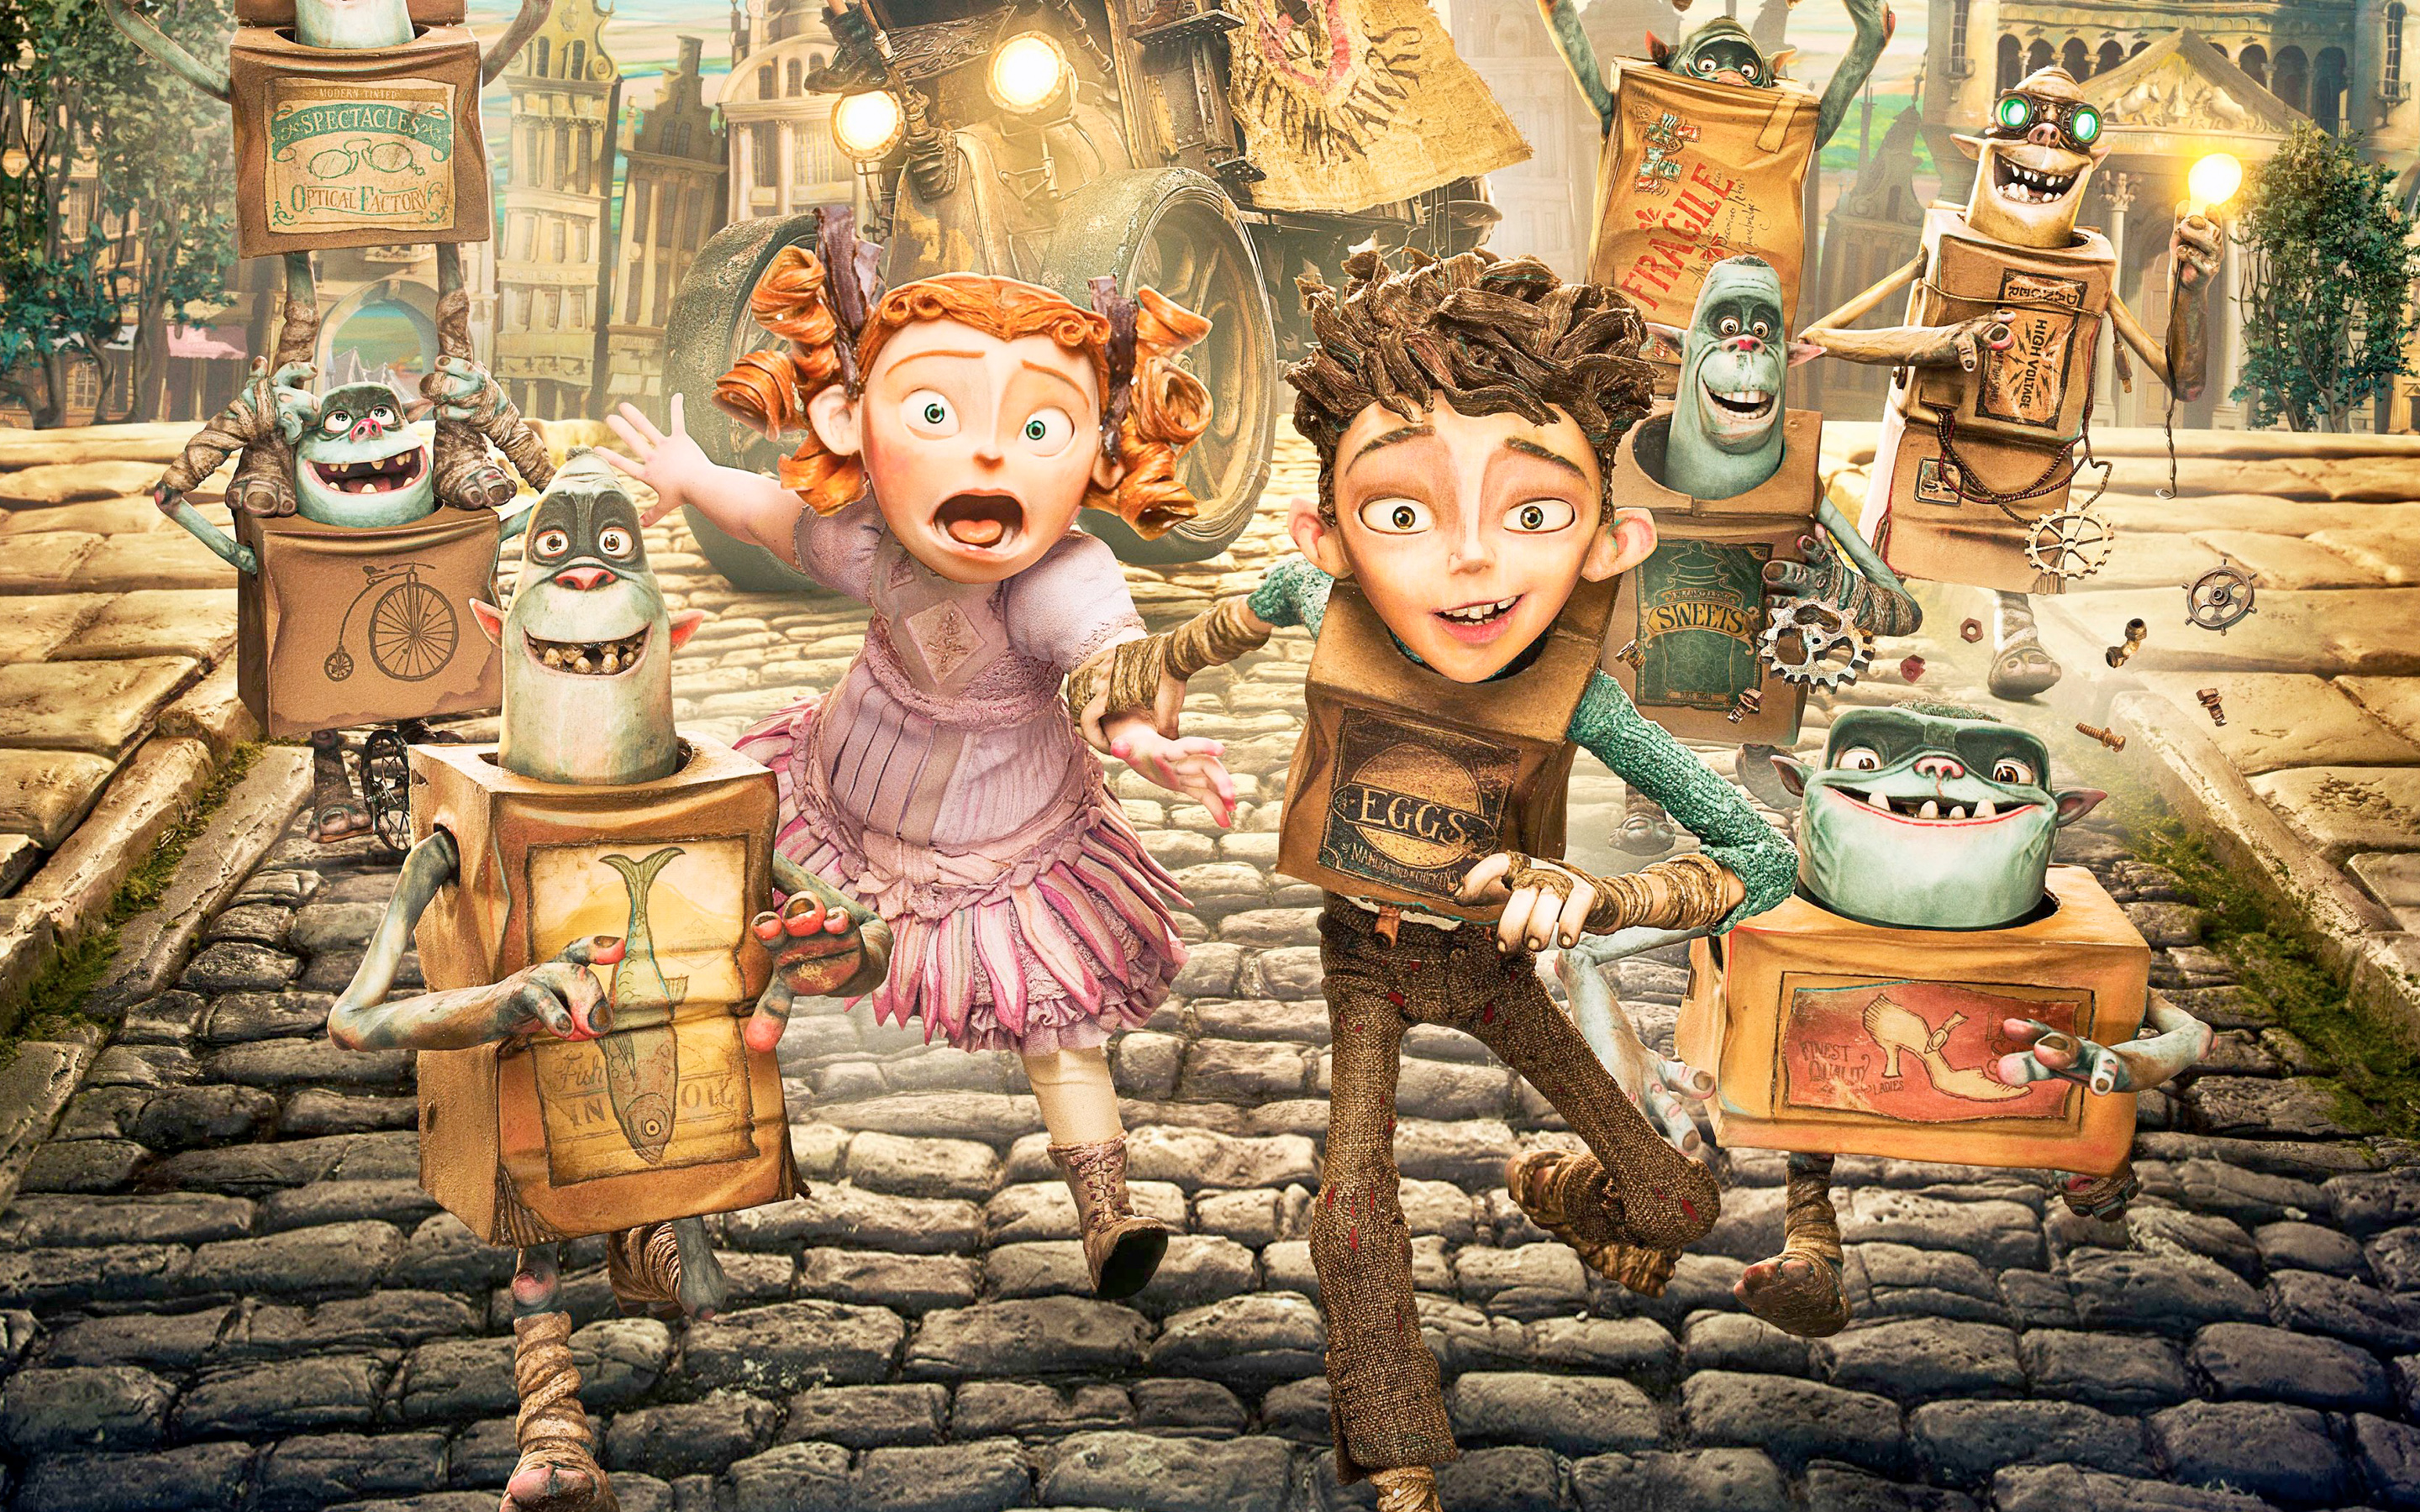 The Boxtrolls 1503.22 Kb